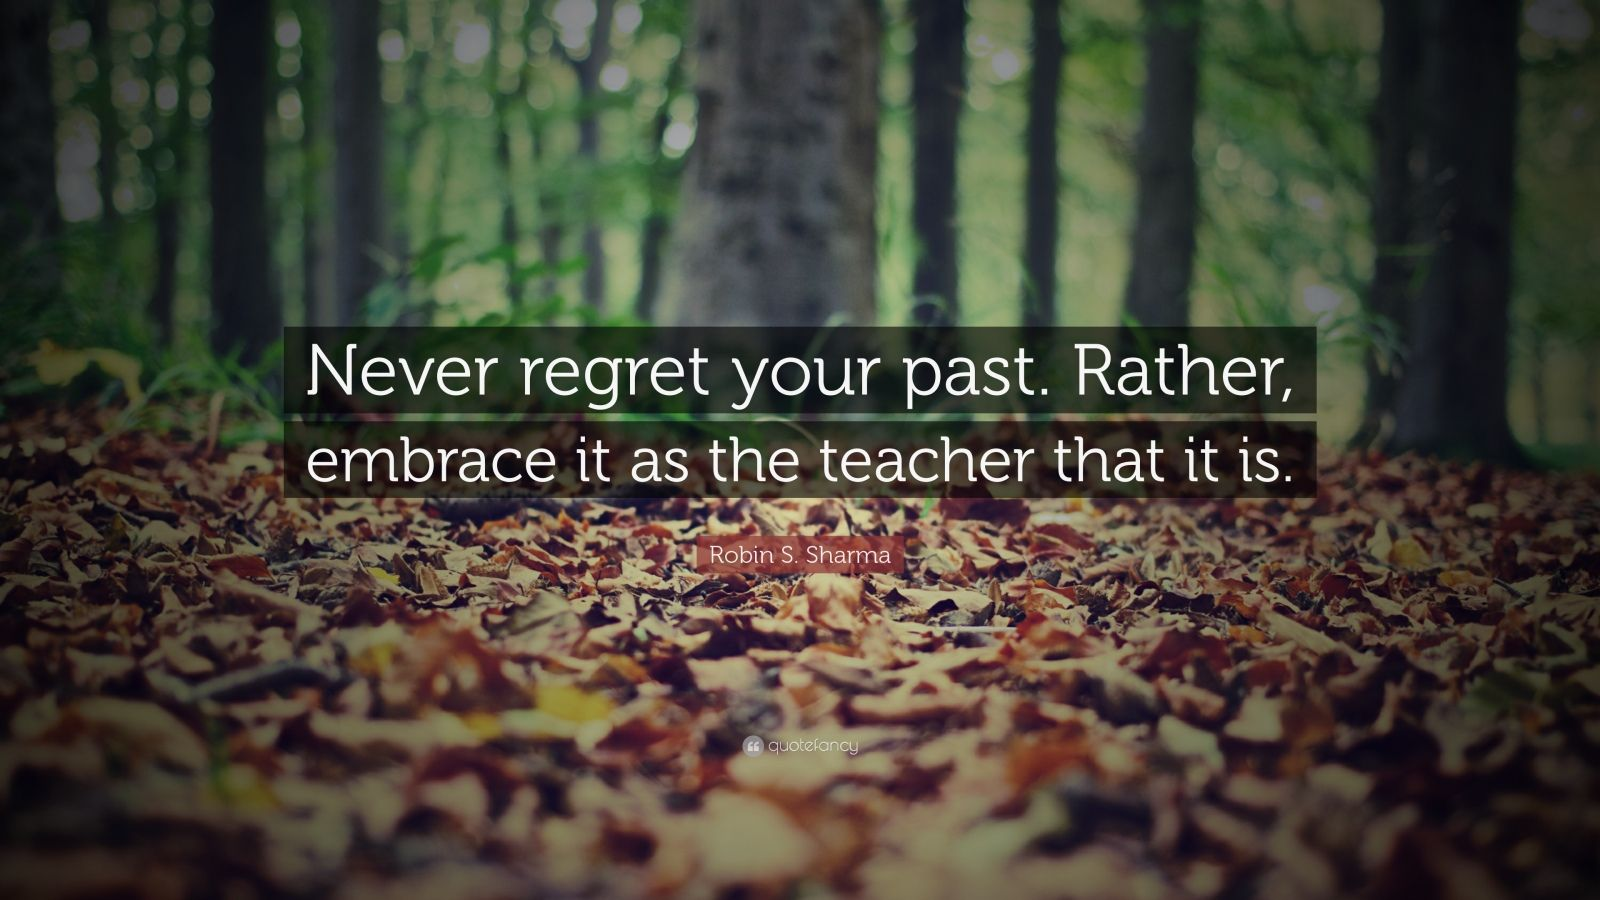 Theodore Roosevelt Wallpaper Quote Robin S Sharma Quote Never Regret Your Past Rather